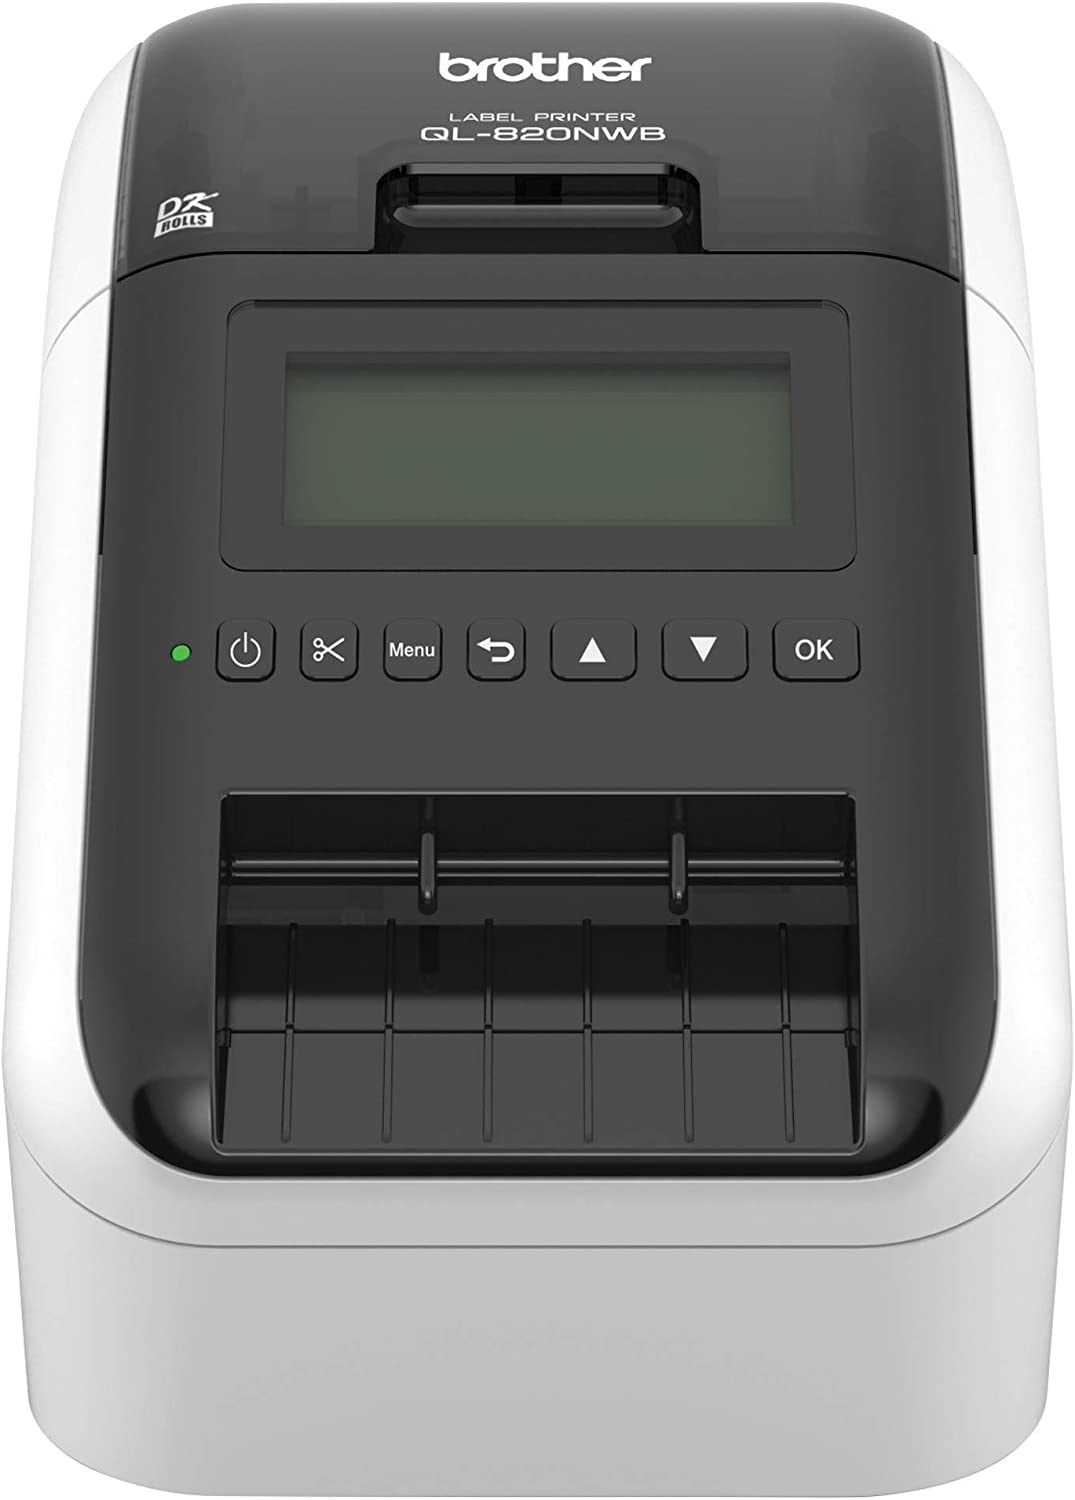 Brother QL-820NWB Professional, Ultra Flexible Label Printer with Multiple Connectivity options